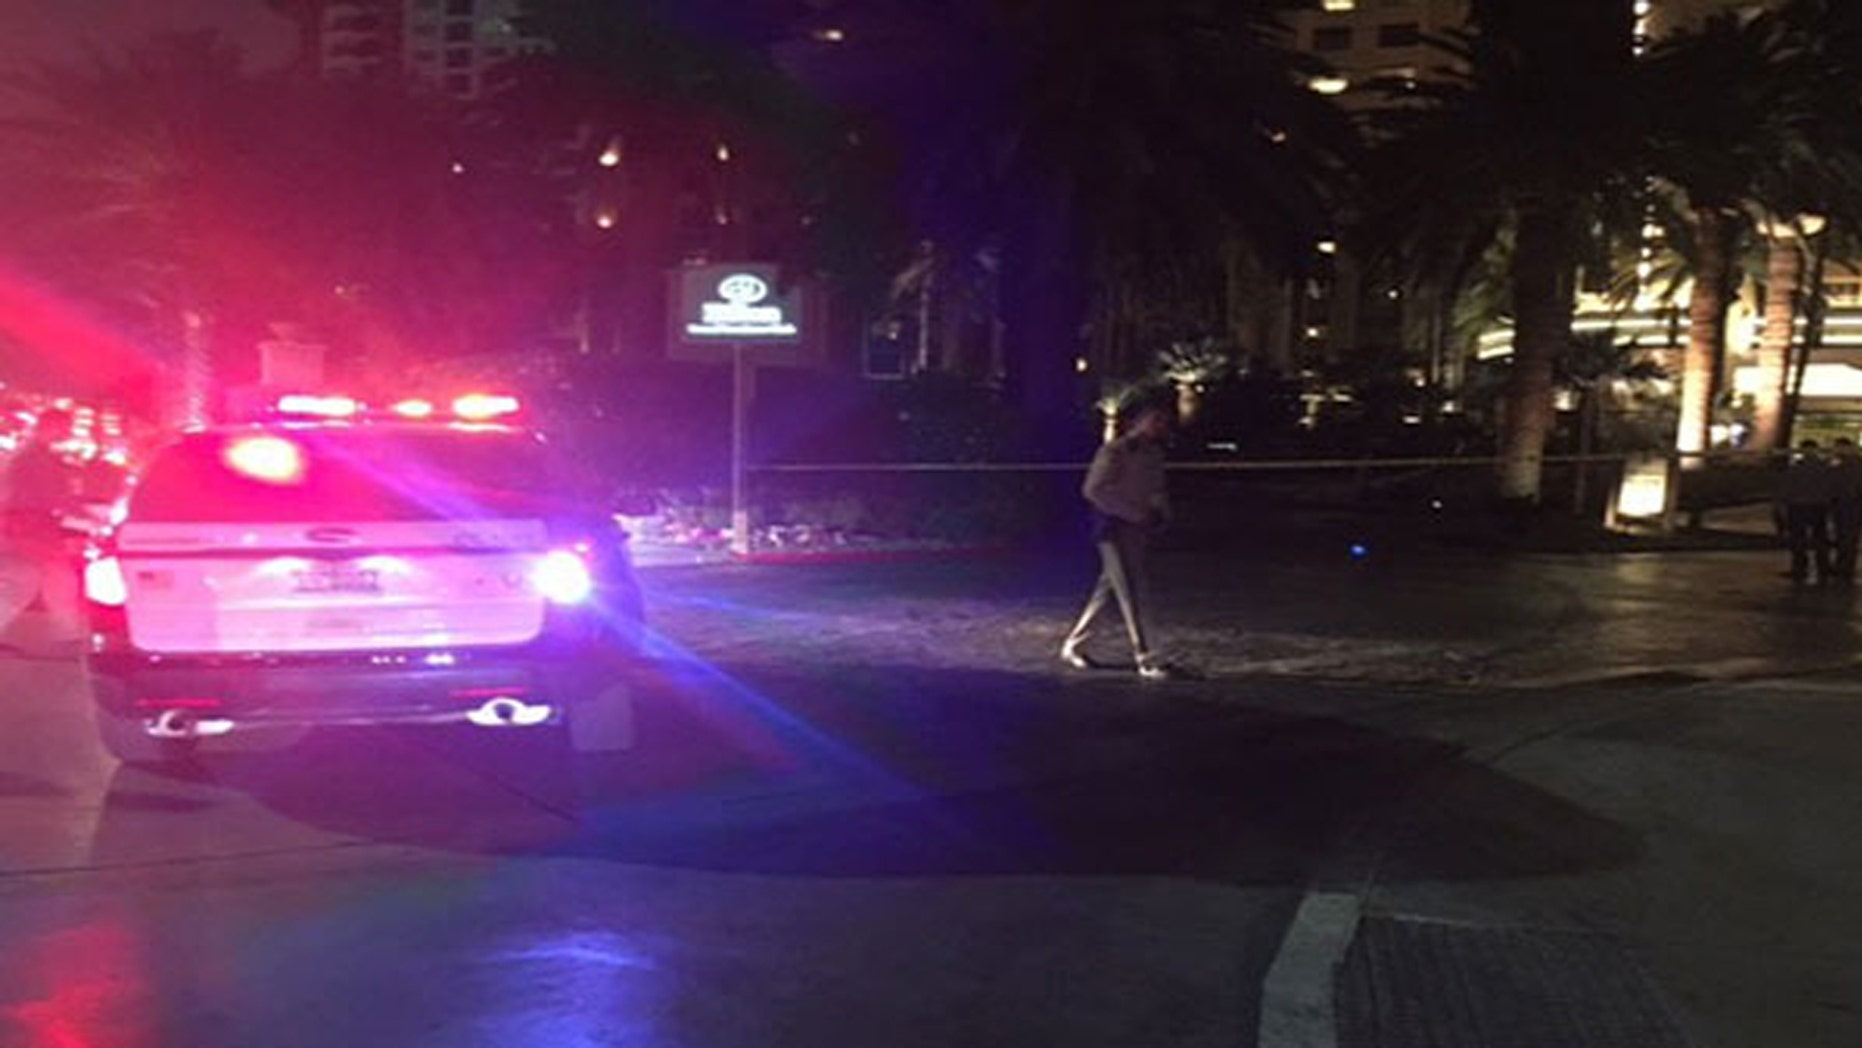 Police responded to the scene of a fatal shooting at the Hilton Grand Hotel on the Las Vegas Strip.